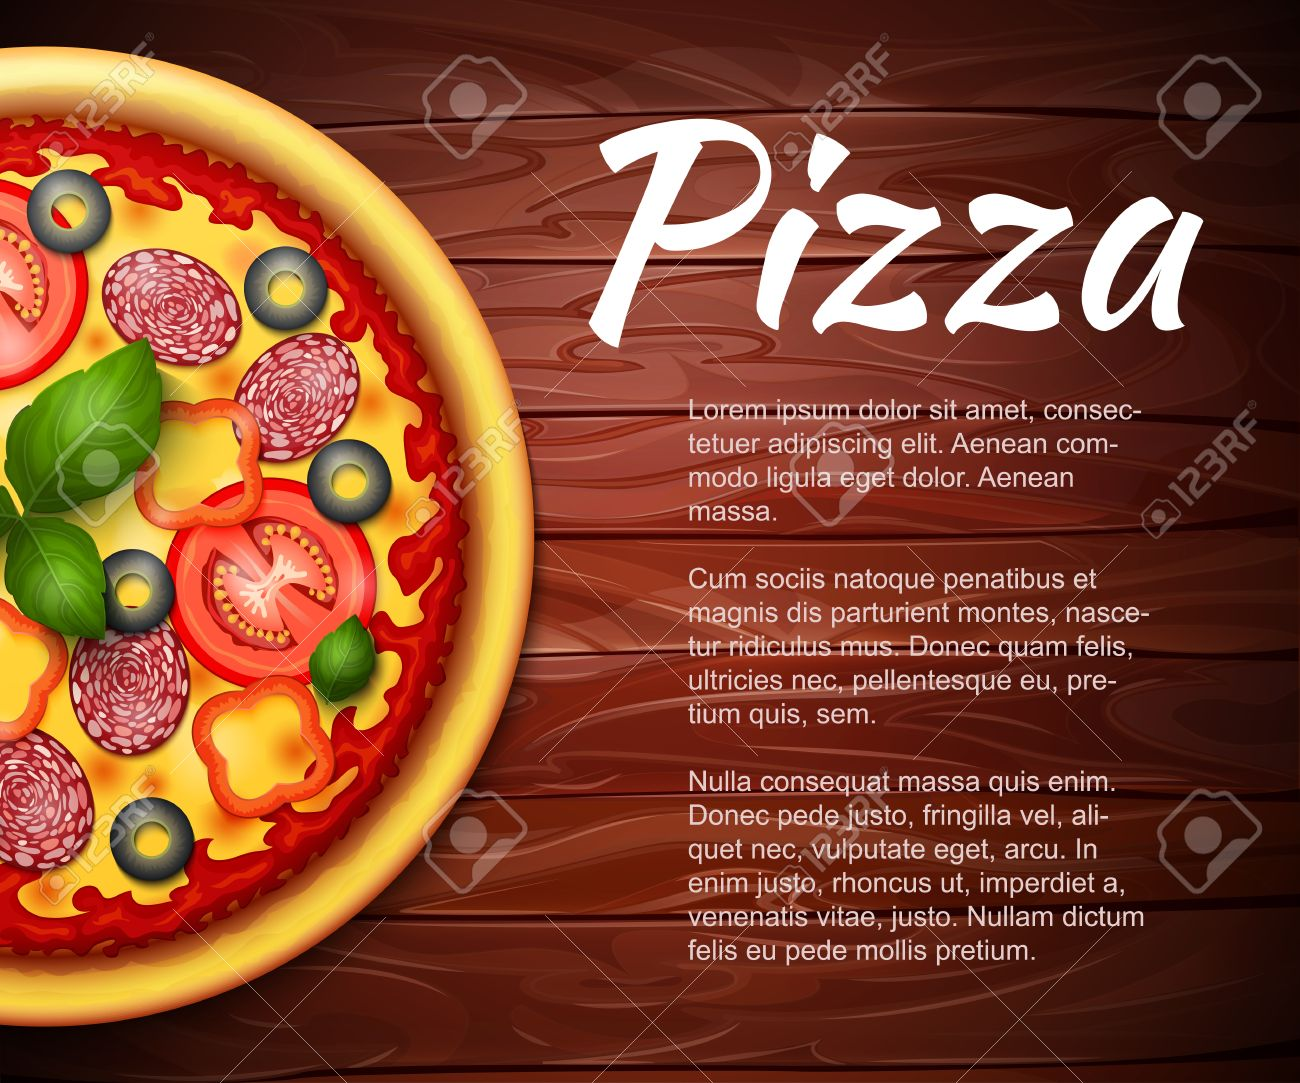 Realistic Pizza Recipe Or Menu Vector Background With Tomatoes And Pepperoni On Wooden Table